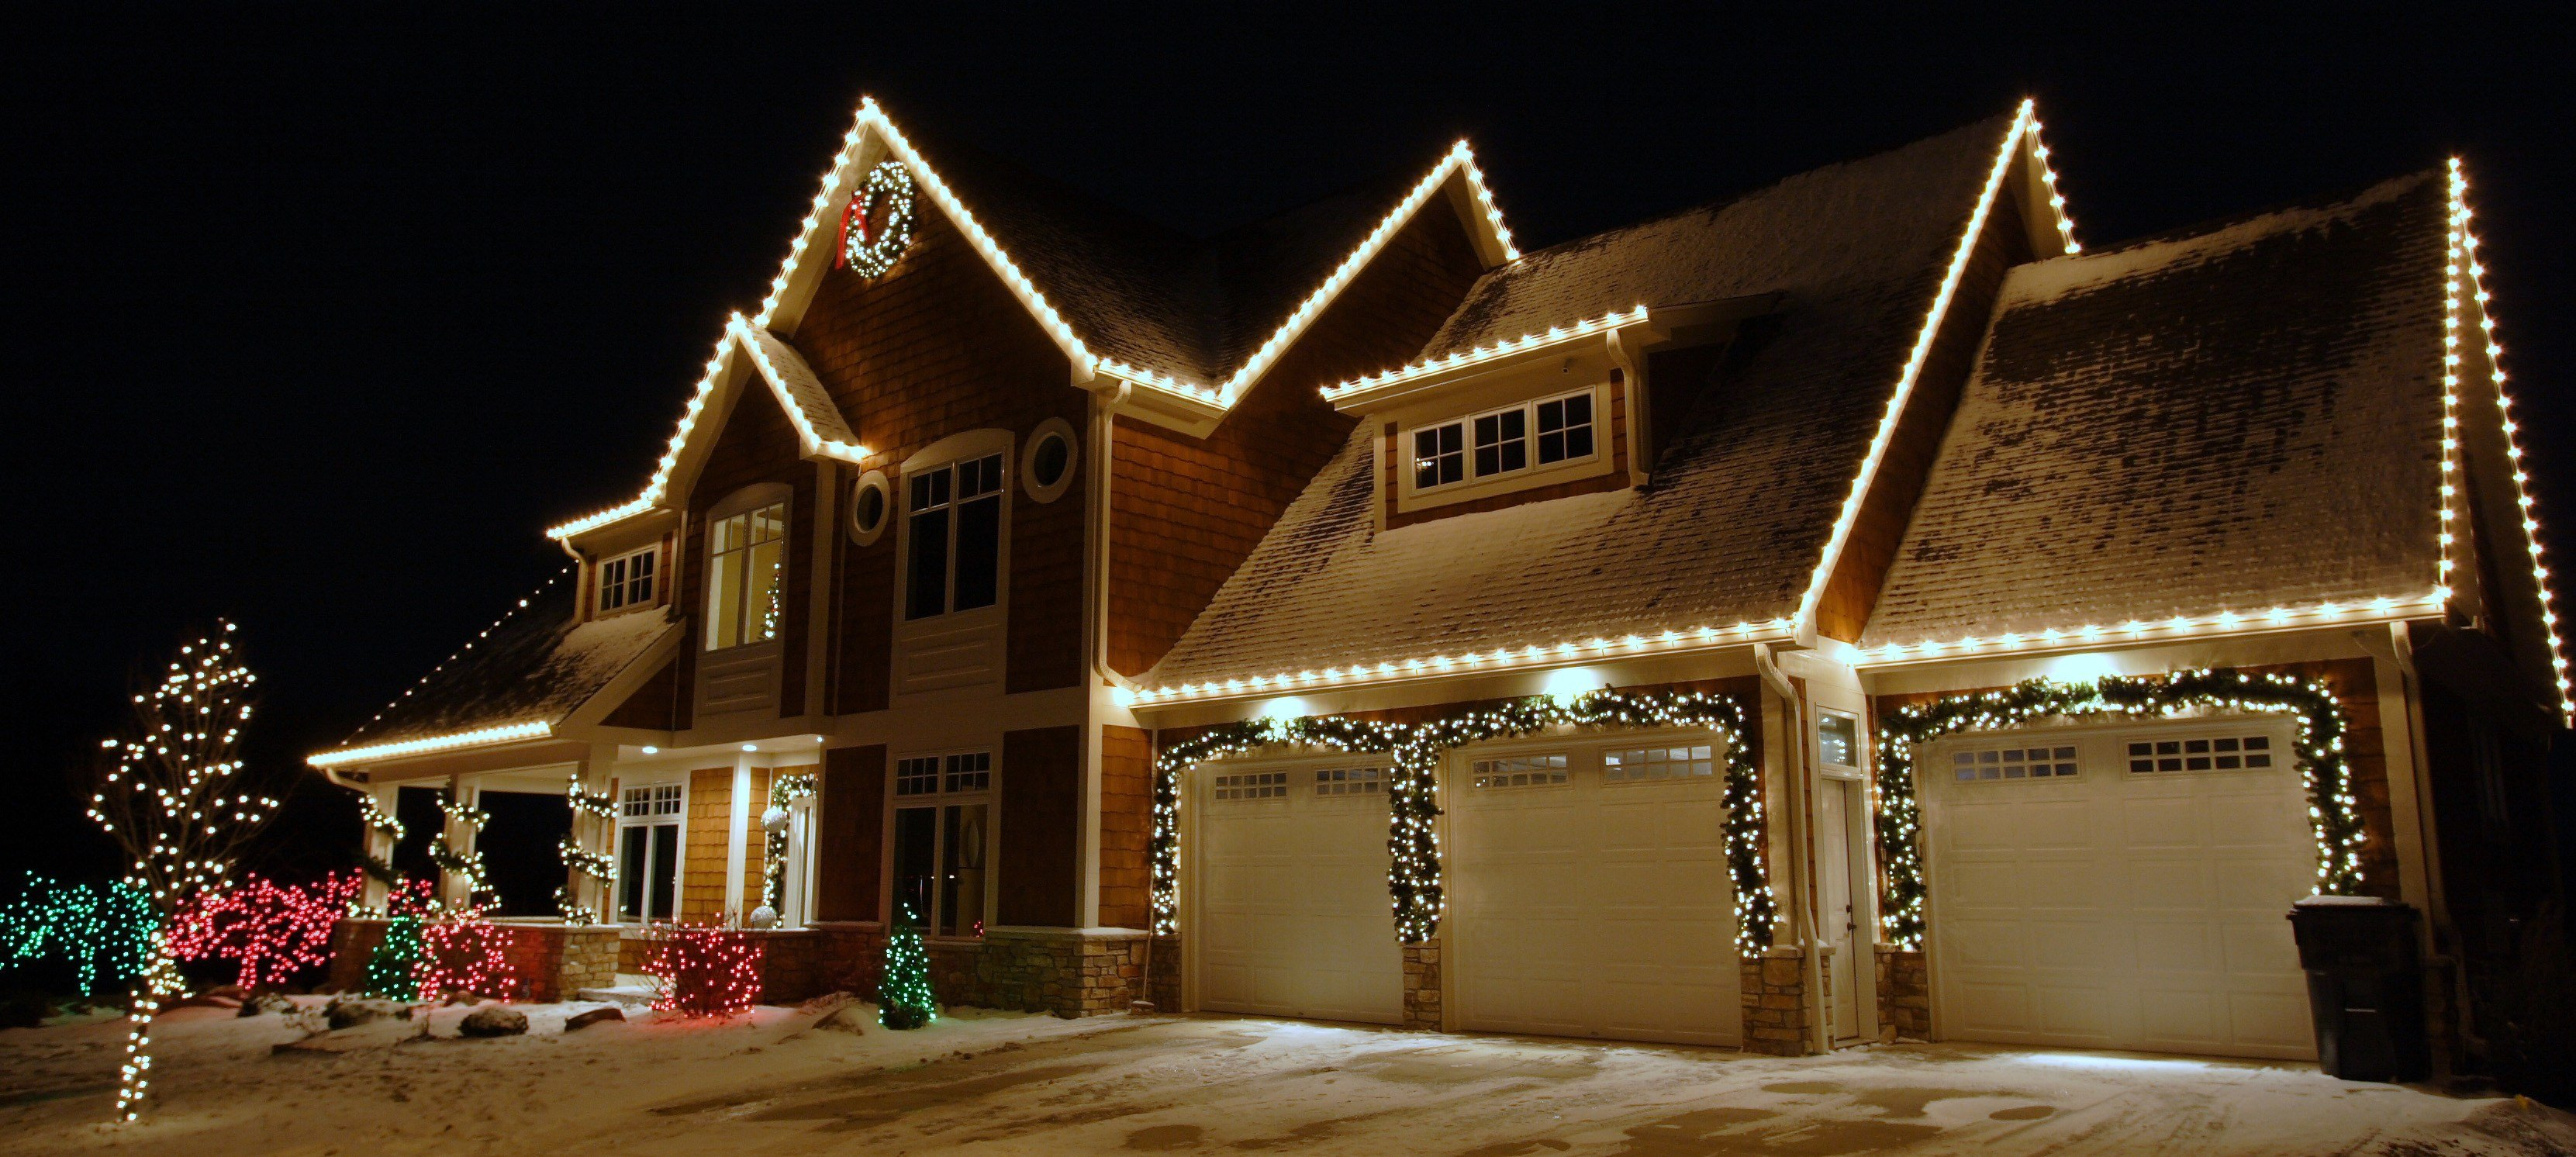 Red Nose Lighting Decorates Your House Any Way You D Like They Provide All